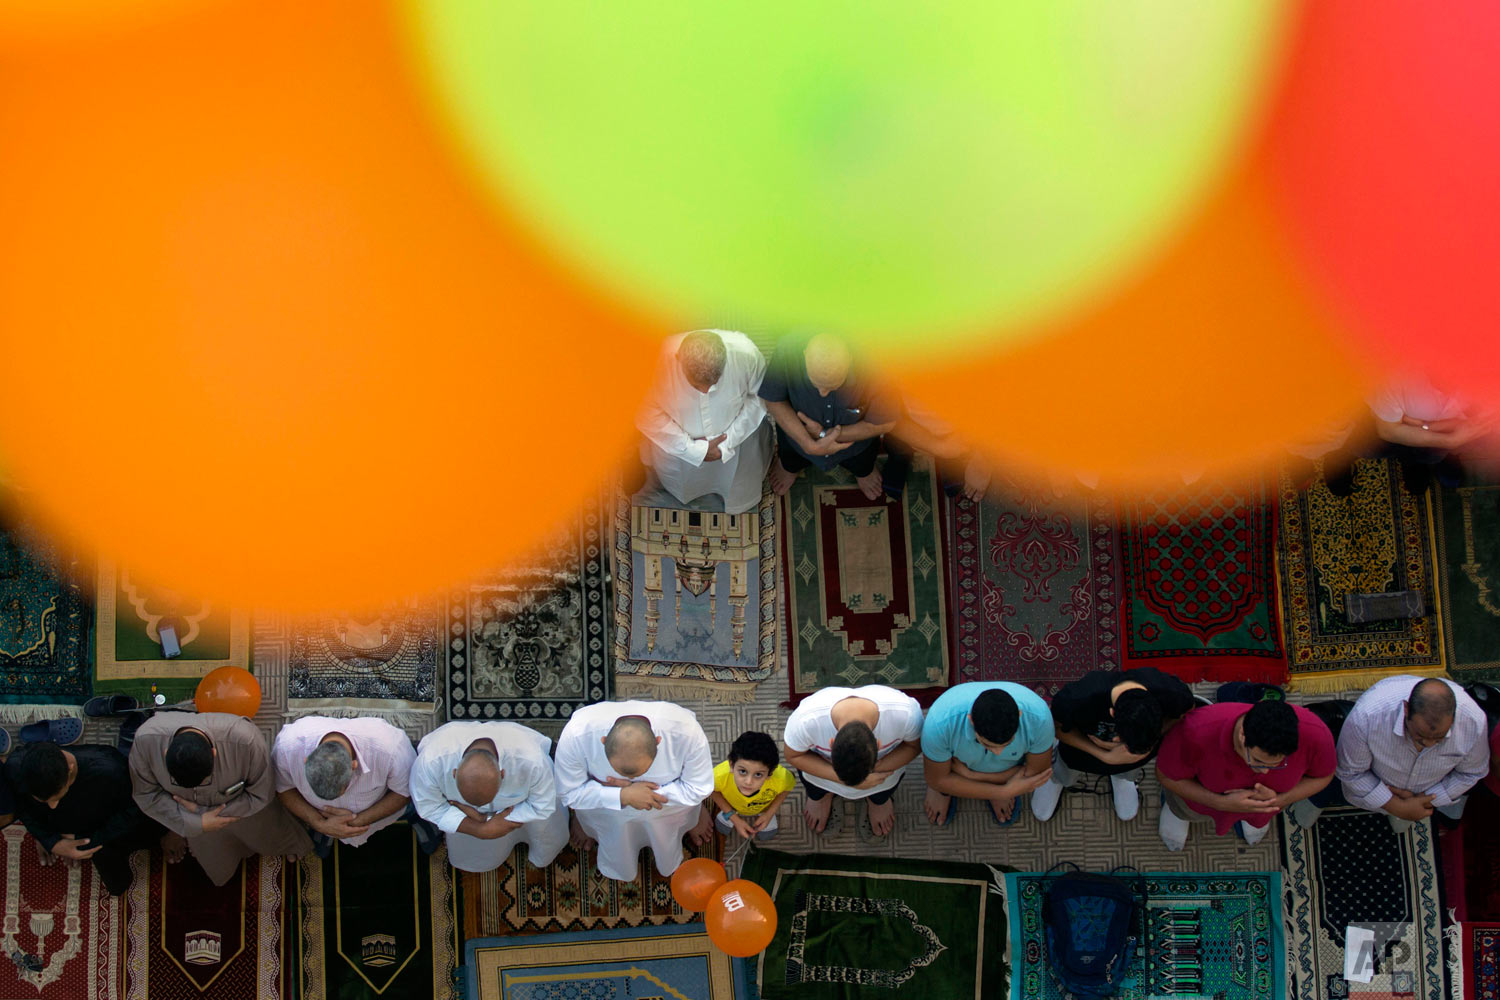 Muslims offer Eid al-Adha prayers outside al-Seddik mosque in Cairo, Egypt, Tuesday, Aug. 21, 2018. During the holiday, which in most places lasts four days, Muslims slaughter sheep or cattle, distribute part of the meat to the poor and eat the rest. (AP Photo/Amr Nabil)